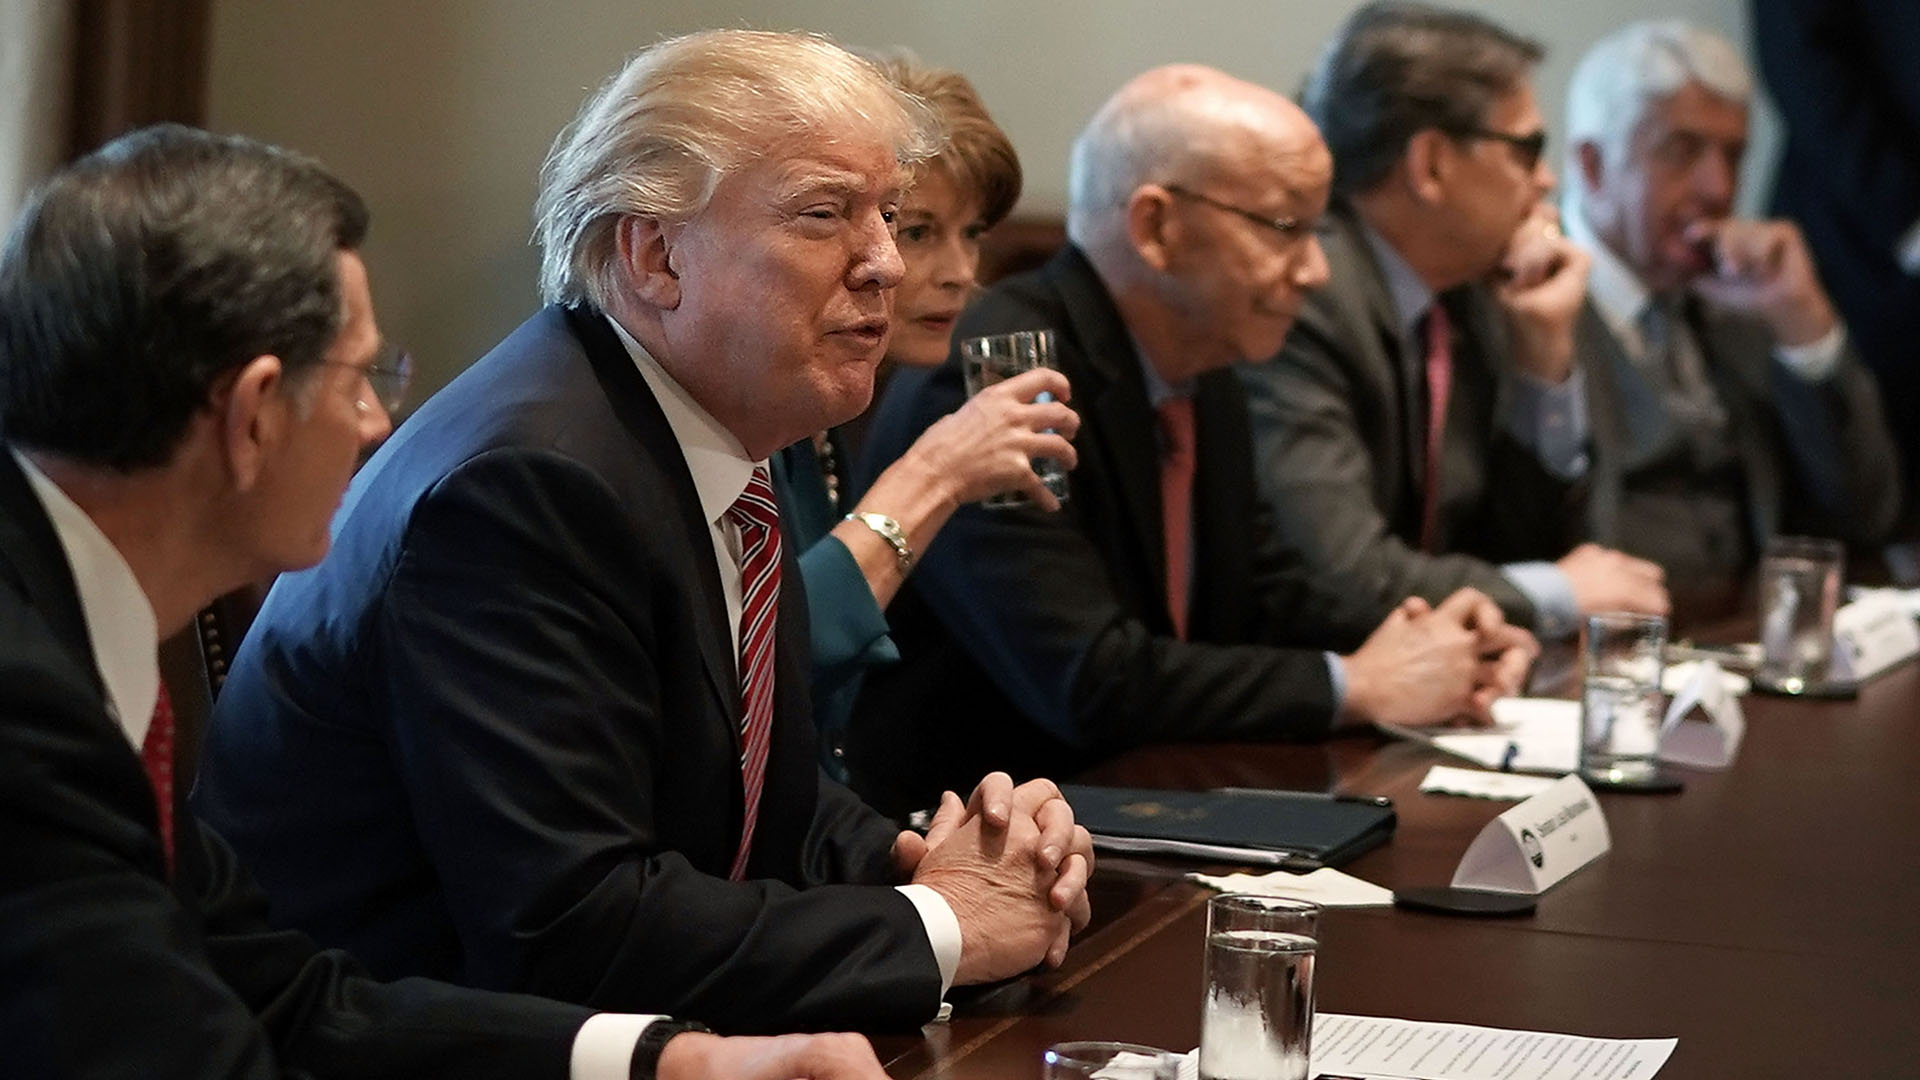 President Trump Meets With Congressional Lawmakers To Discuss His Infrastructure Plan_392220